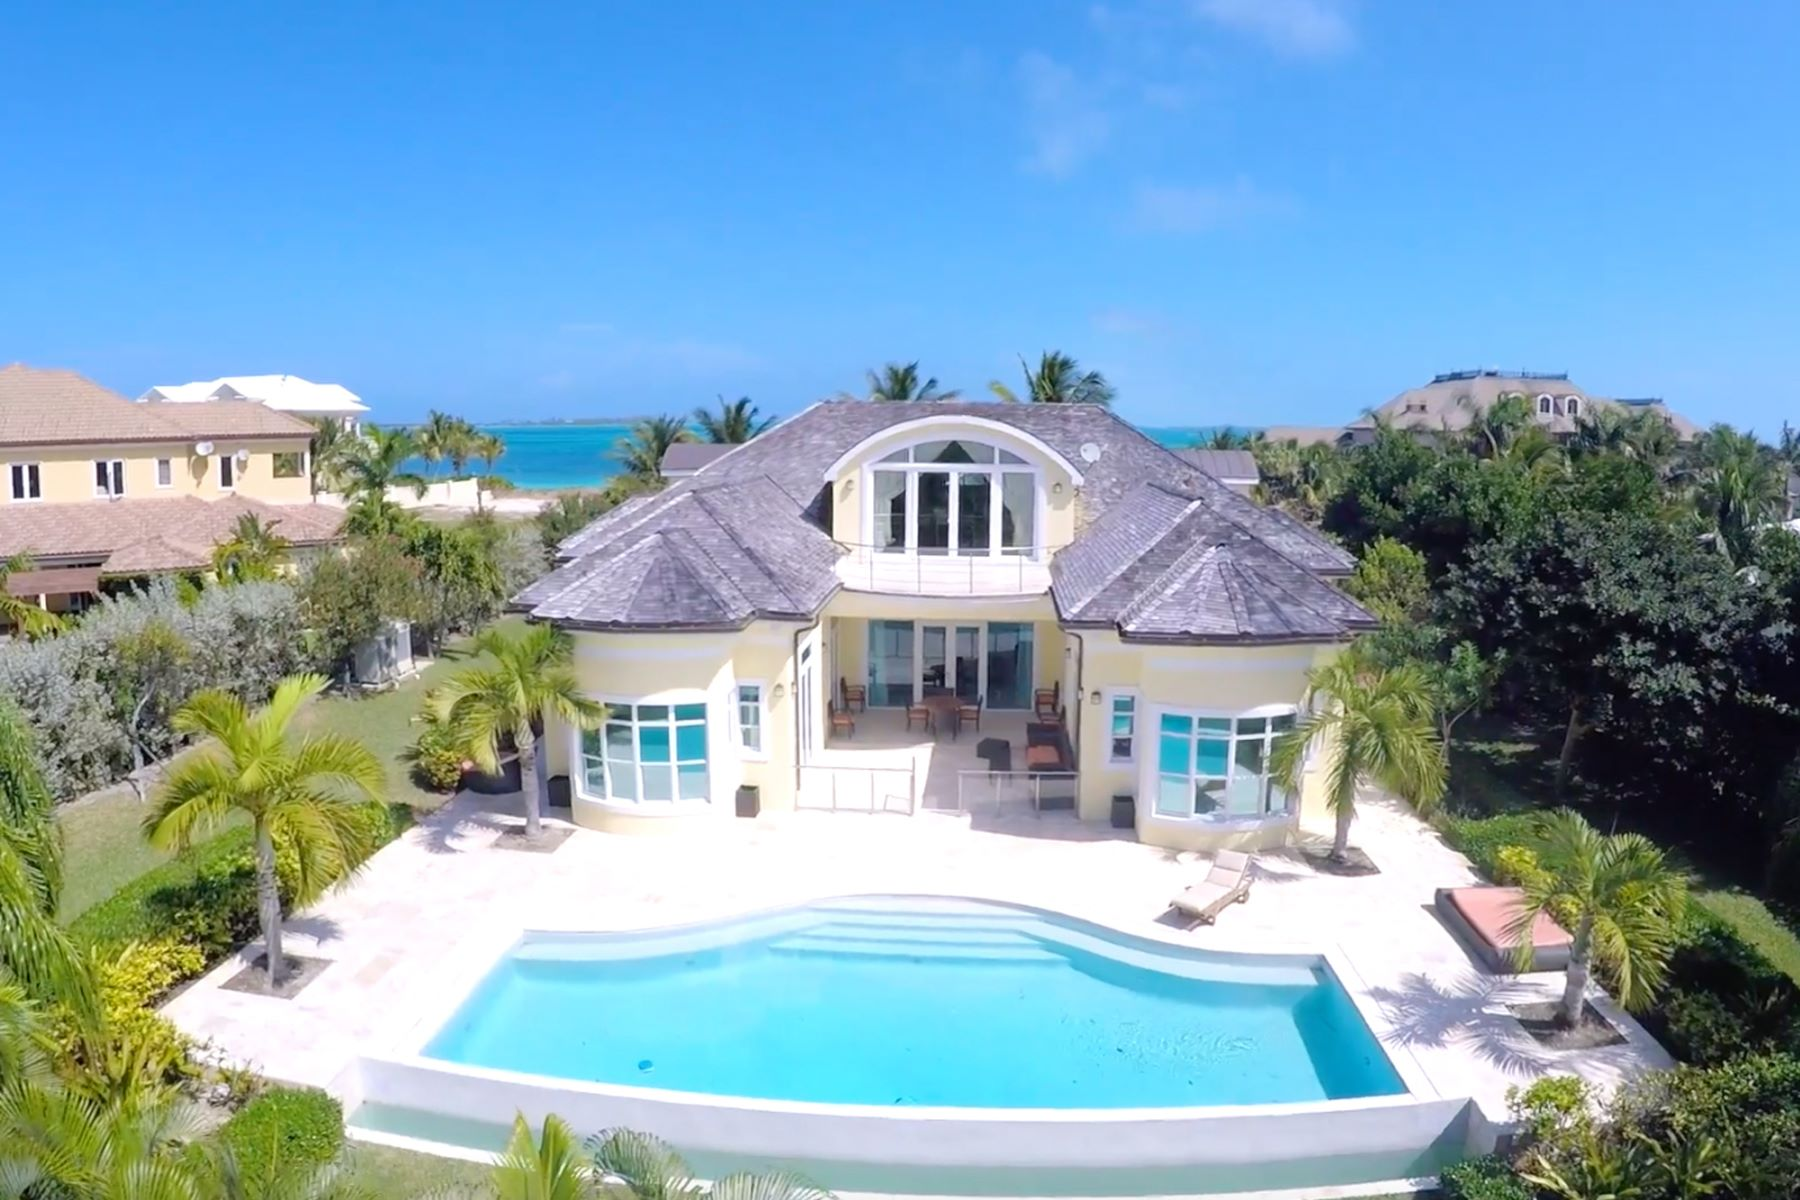 Single Family Home for Sale at Ocean Club Estates #22 Ocean Club Estates, Paradise Island, Nassau And Paradise Island Bahamas